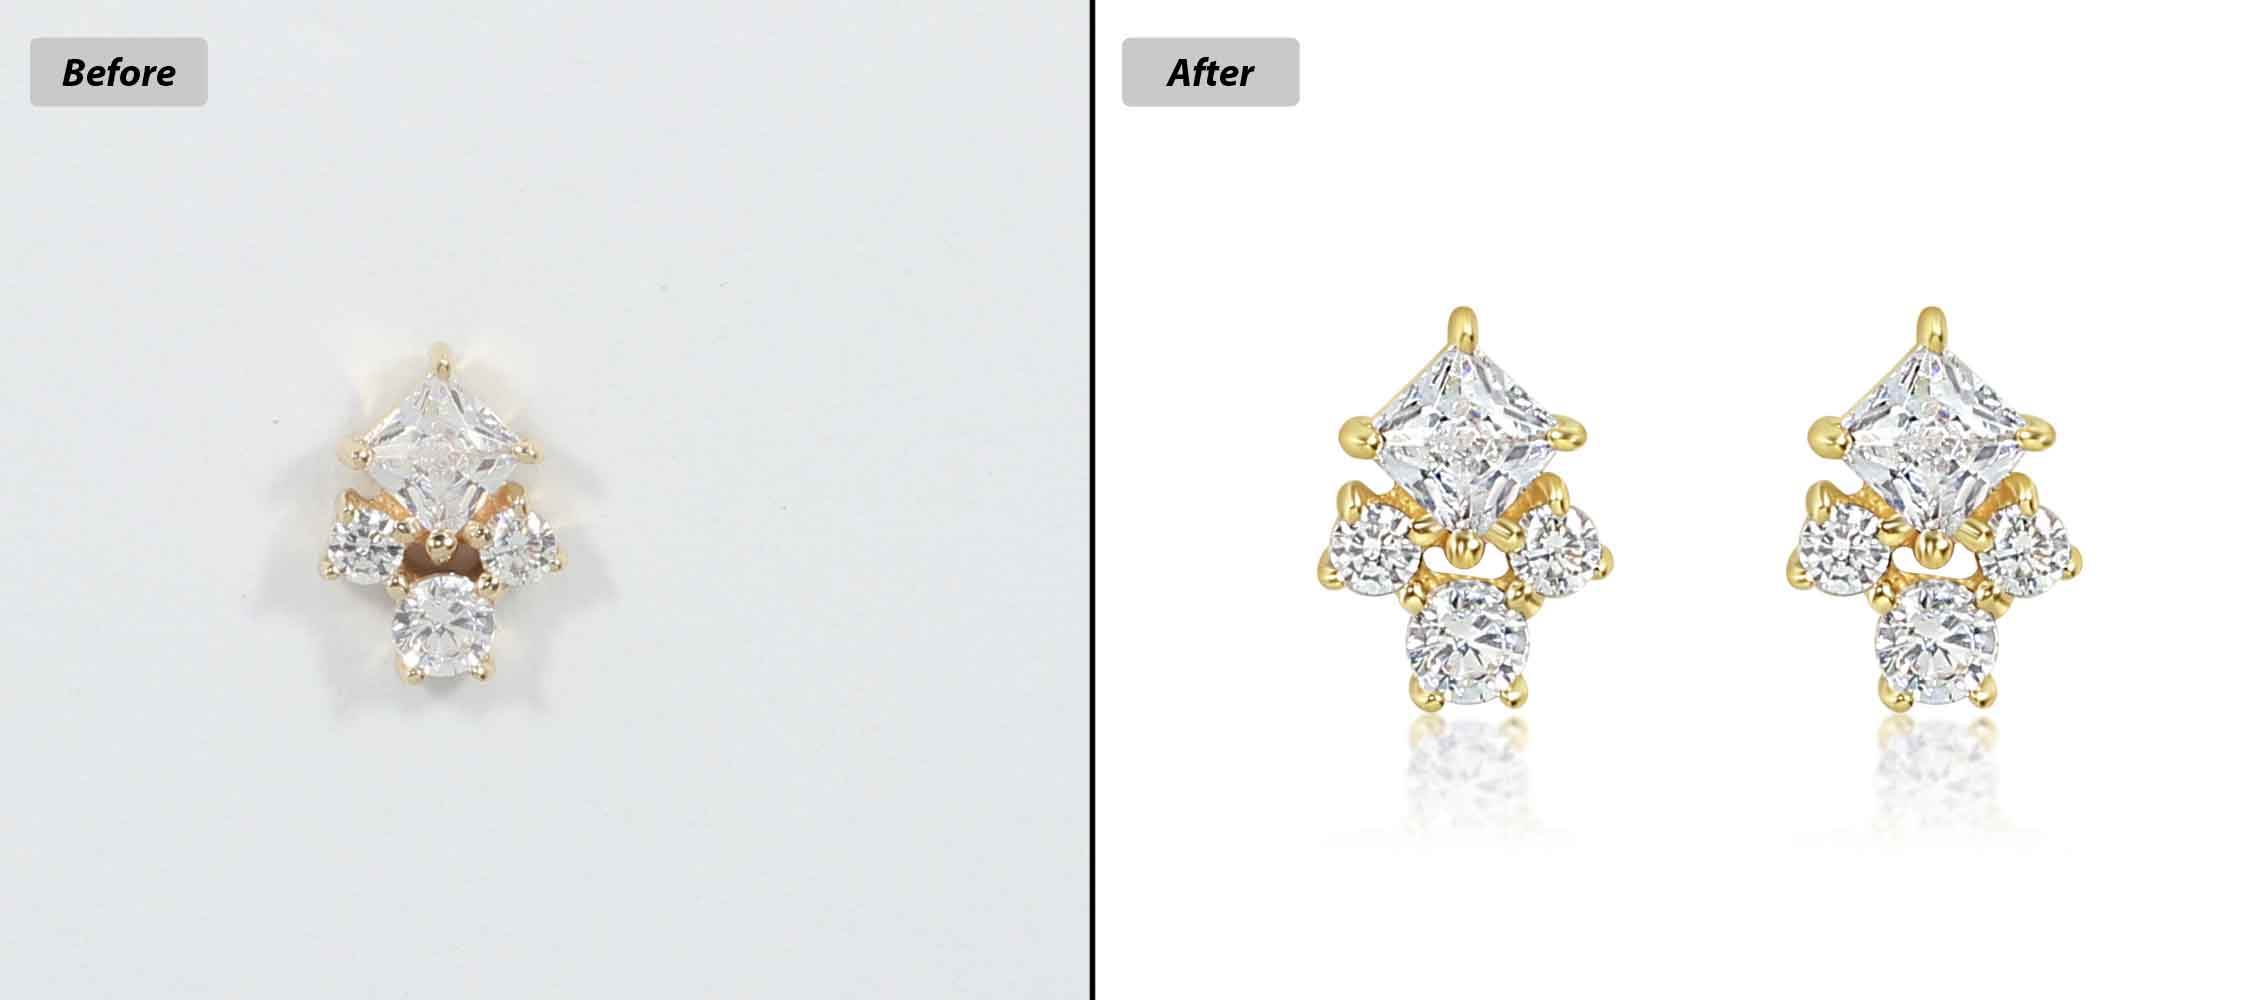 Clipping Charm_Jewellery retouch 0923